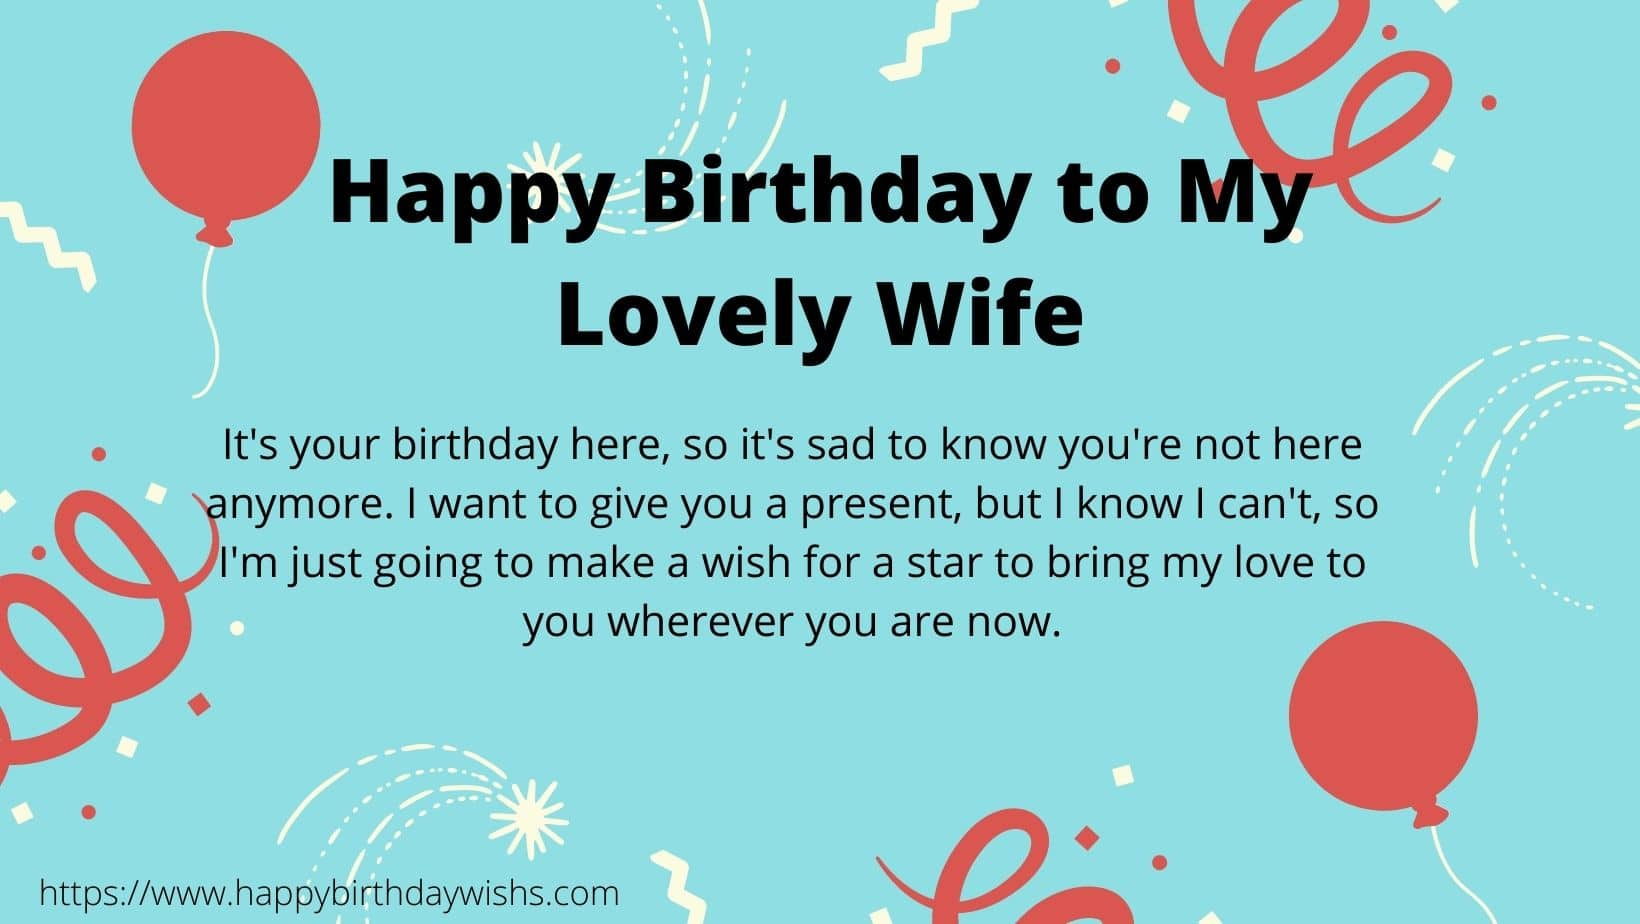 Birthday Wishes for wife in Heaven